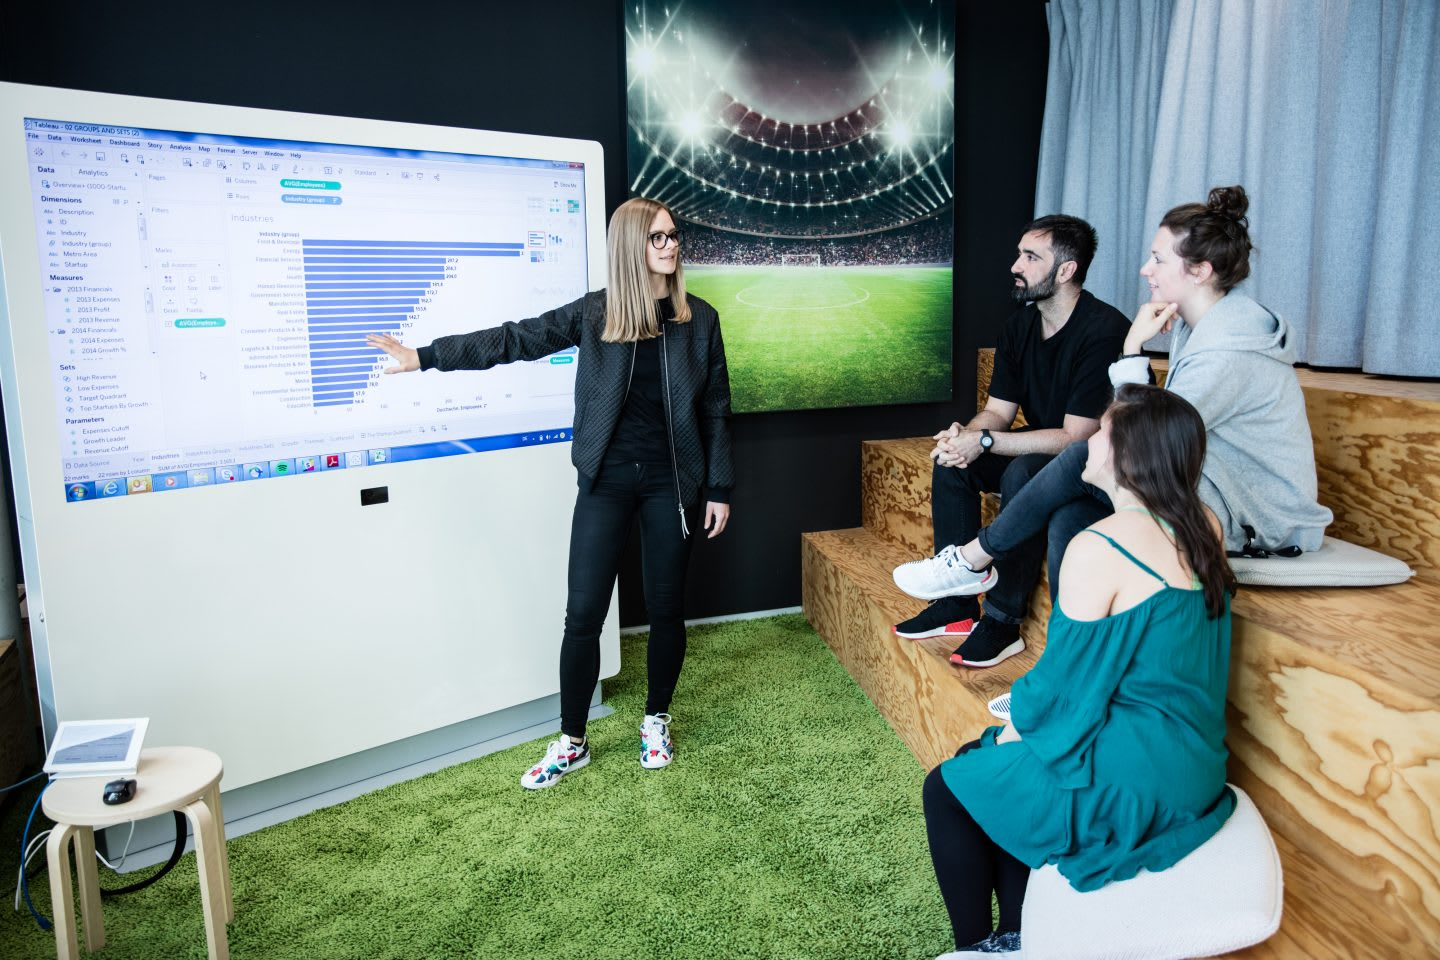 Girl presenting data on a screen to teammate during work meeting, adidas, digital, technology, data, workplace, teamwork